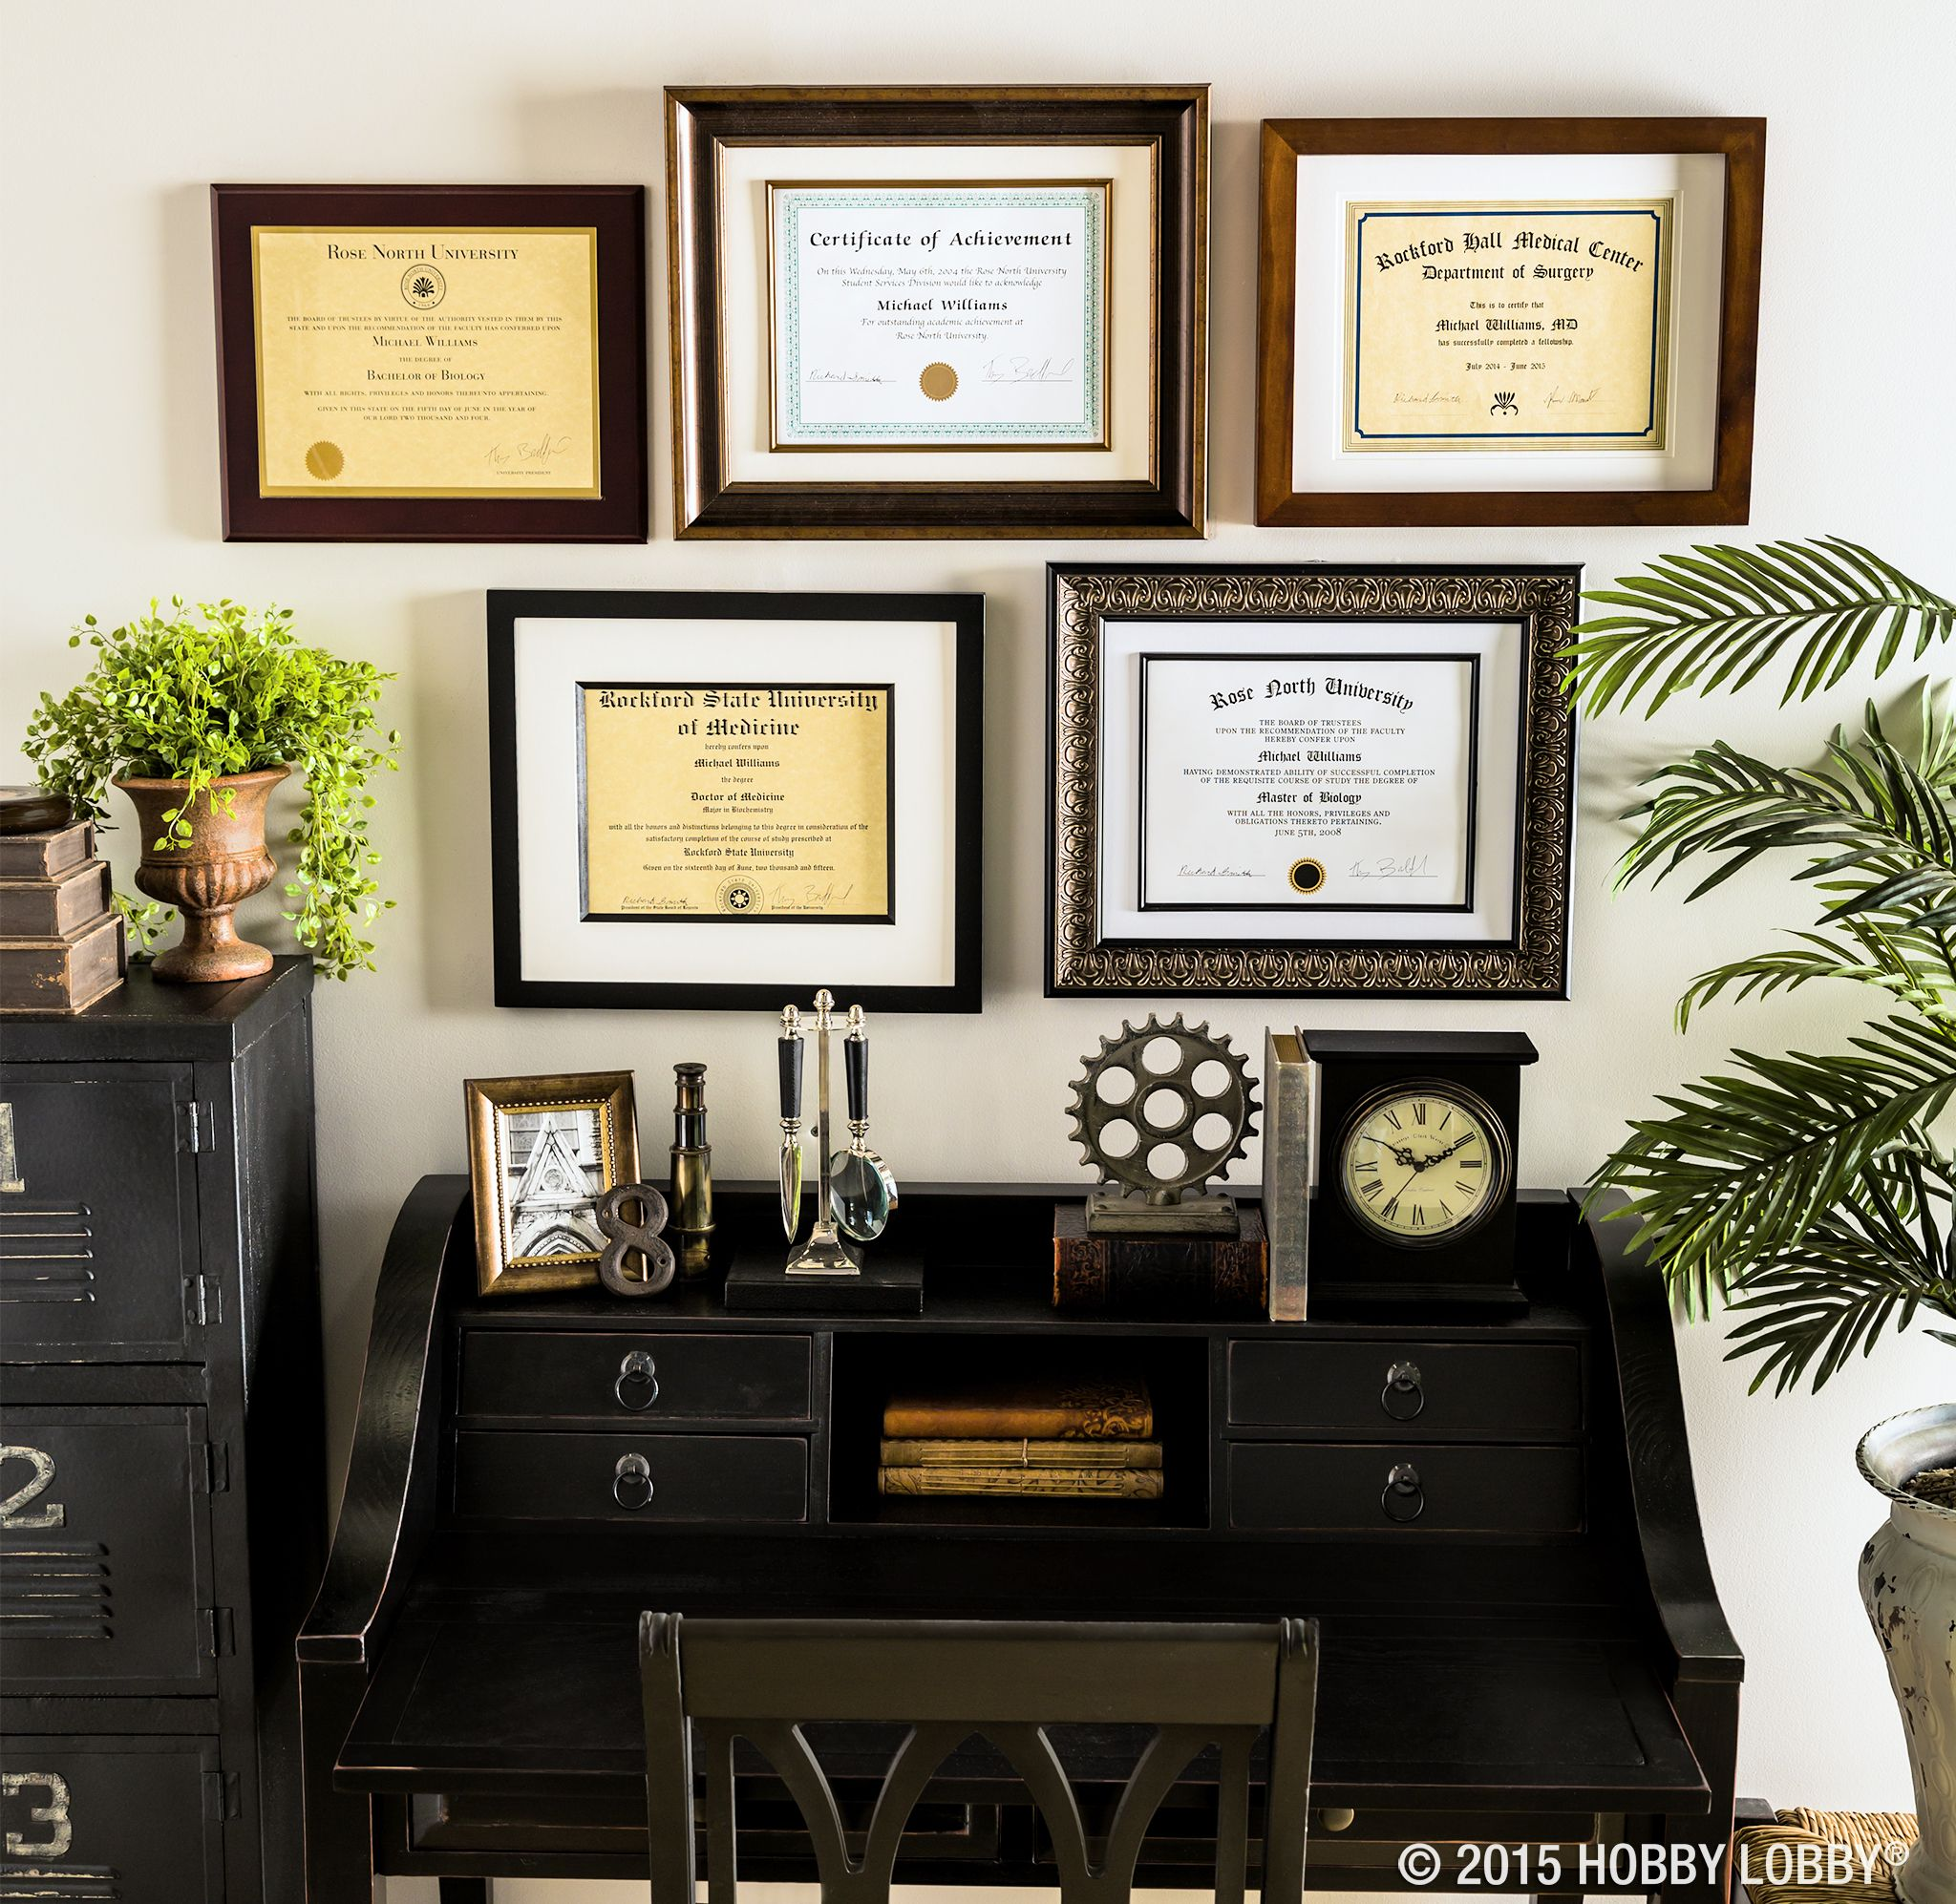 Celebrate your accomplishments by framing your diploma for display ...